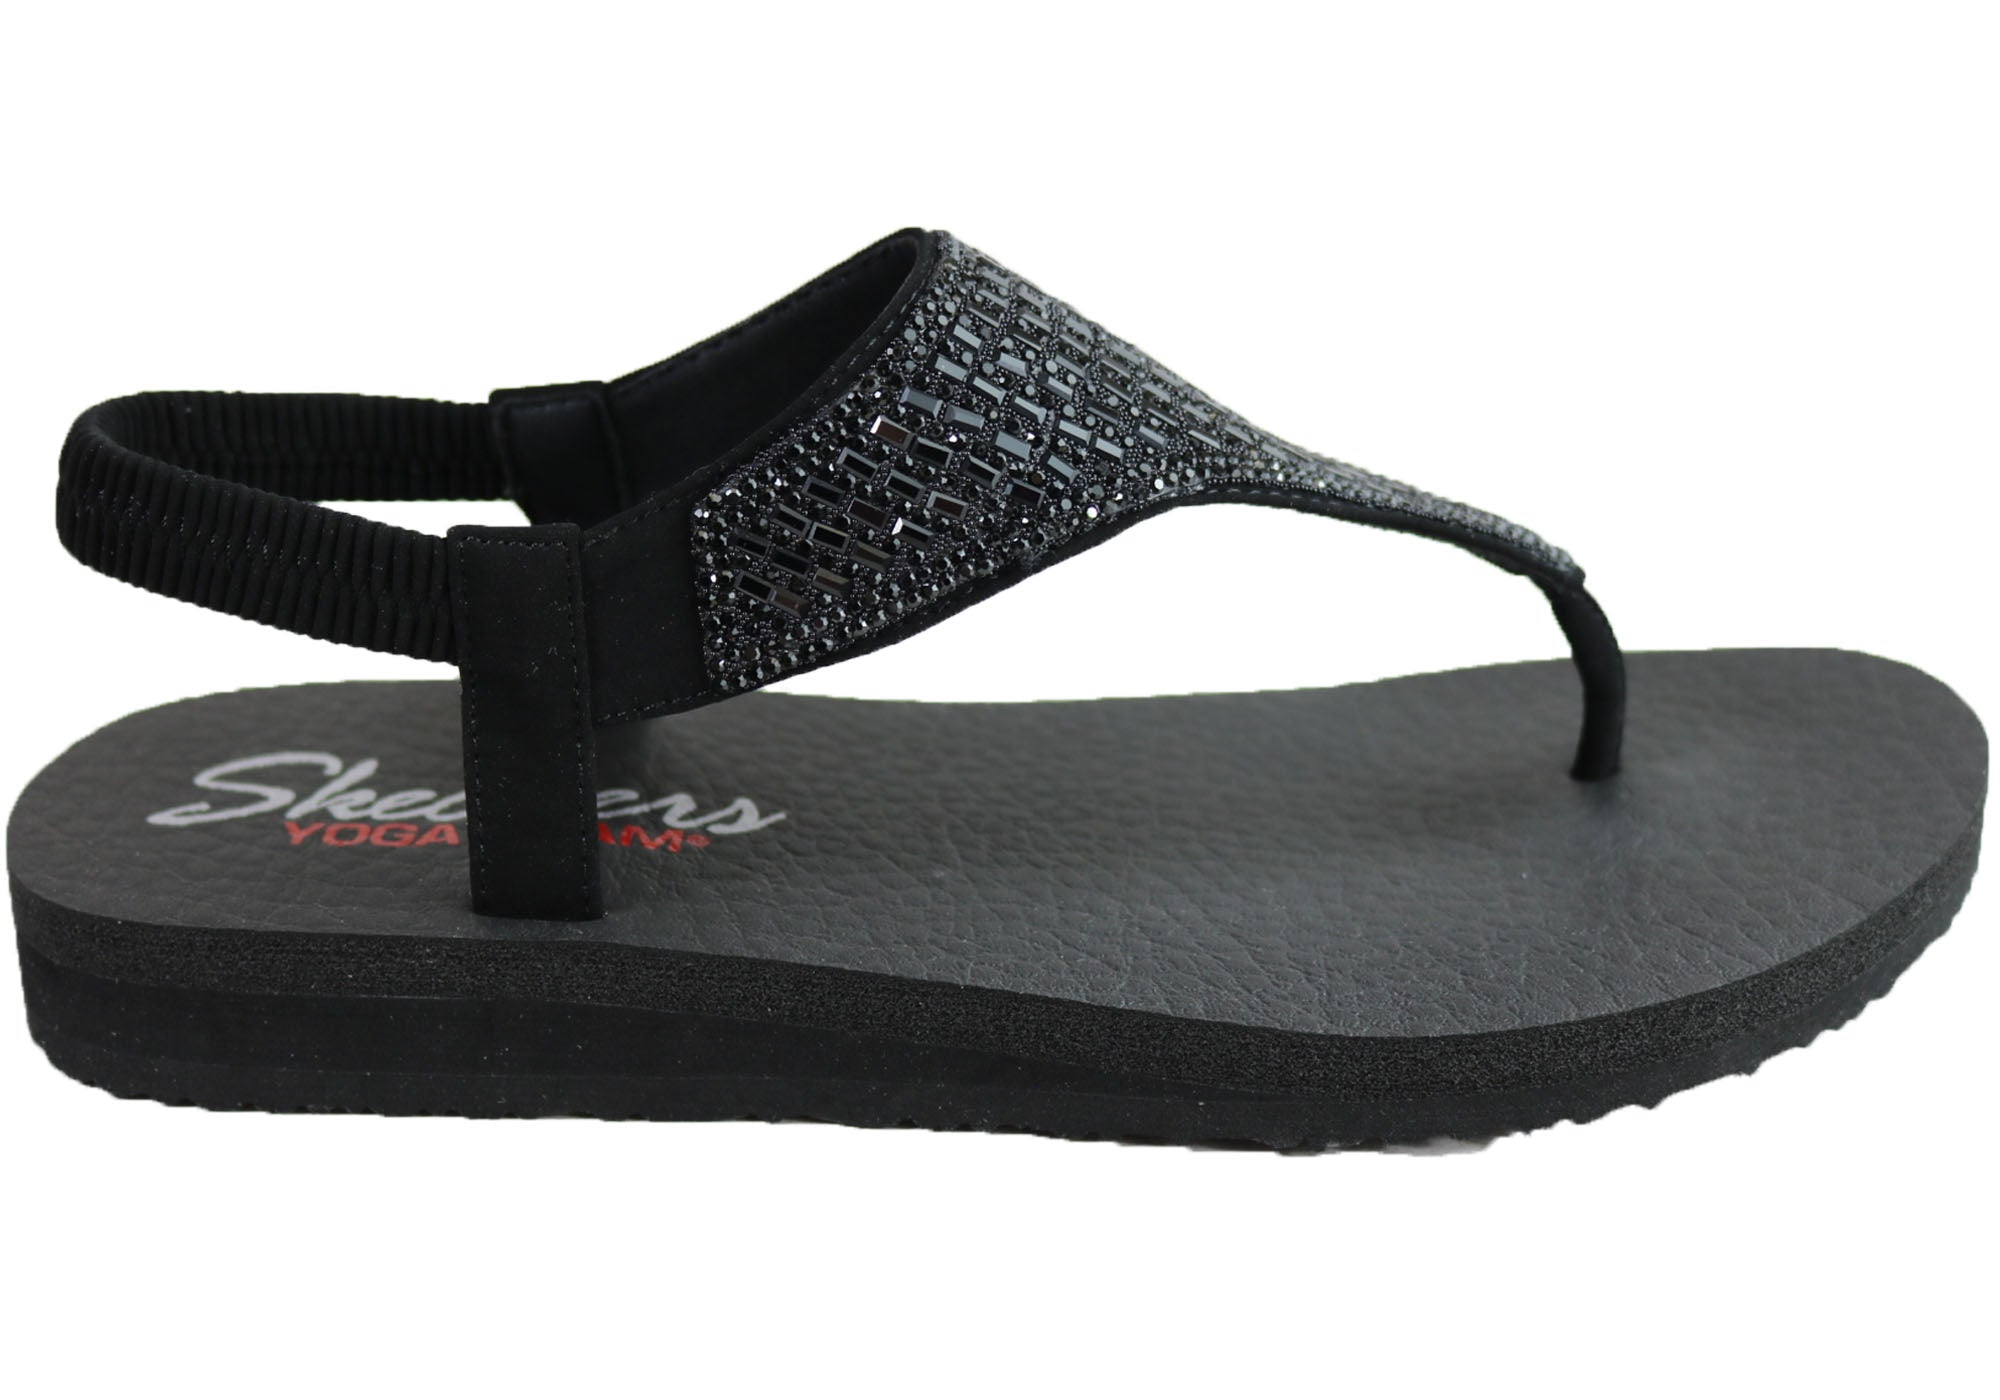 9c78e7f7ee34a NEW SKECHERS WOMENS MEDITATION ROCK CROWN CUSHIONED COMFORTABLE SANDALS